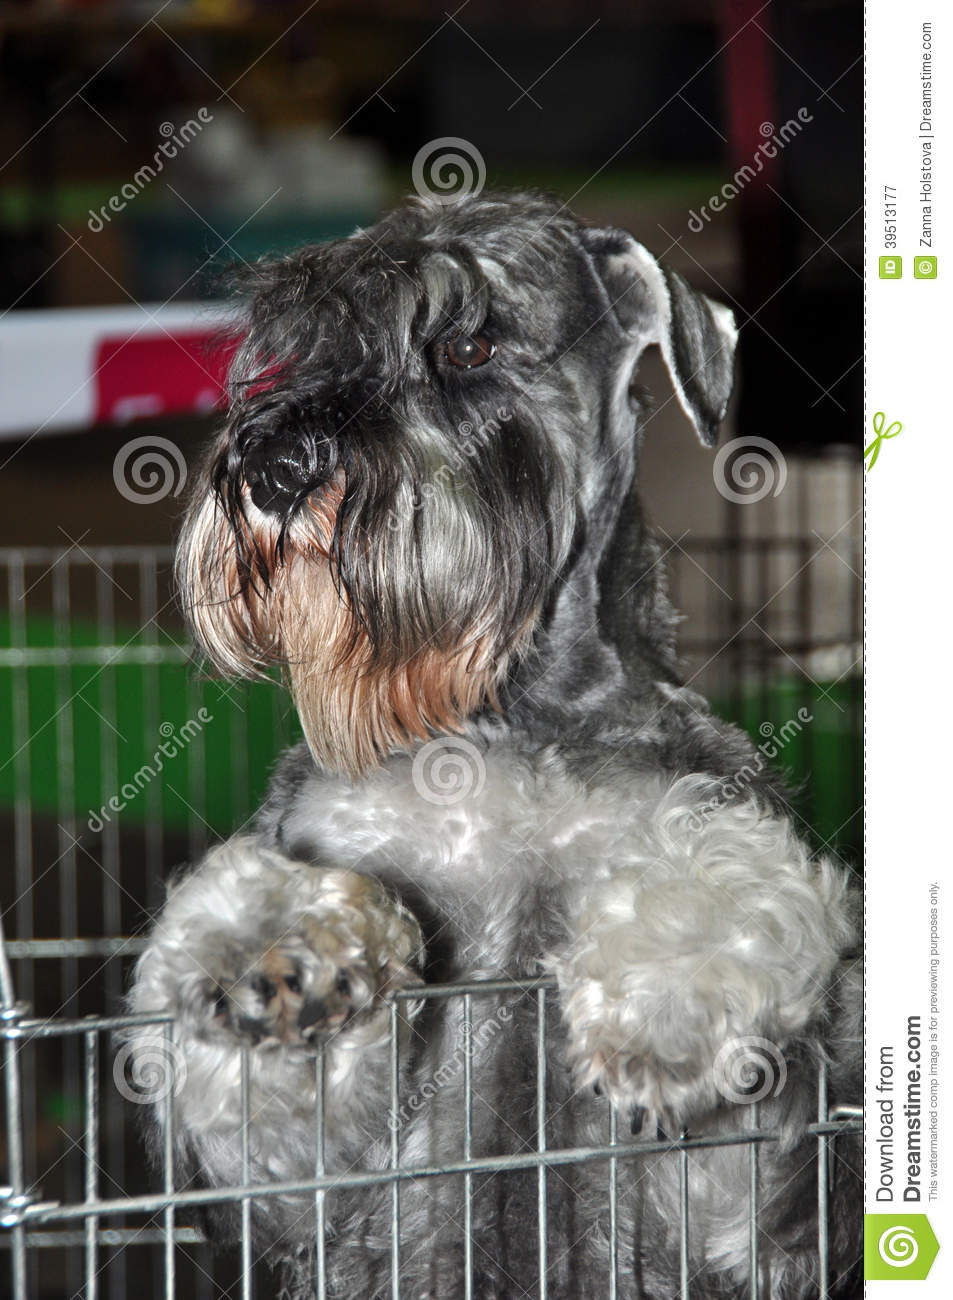 Gray Schnauzer dog in cage